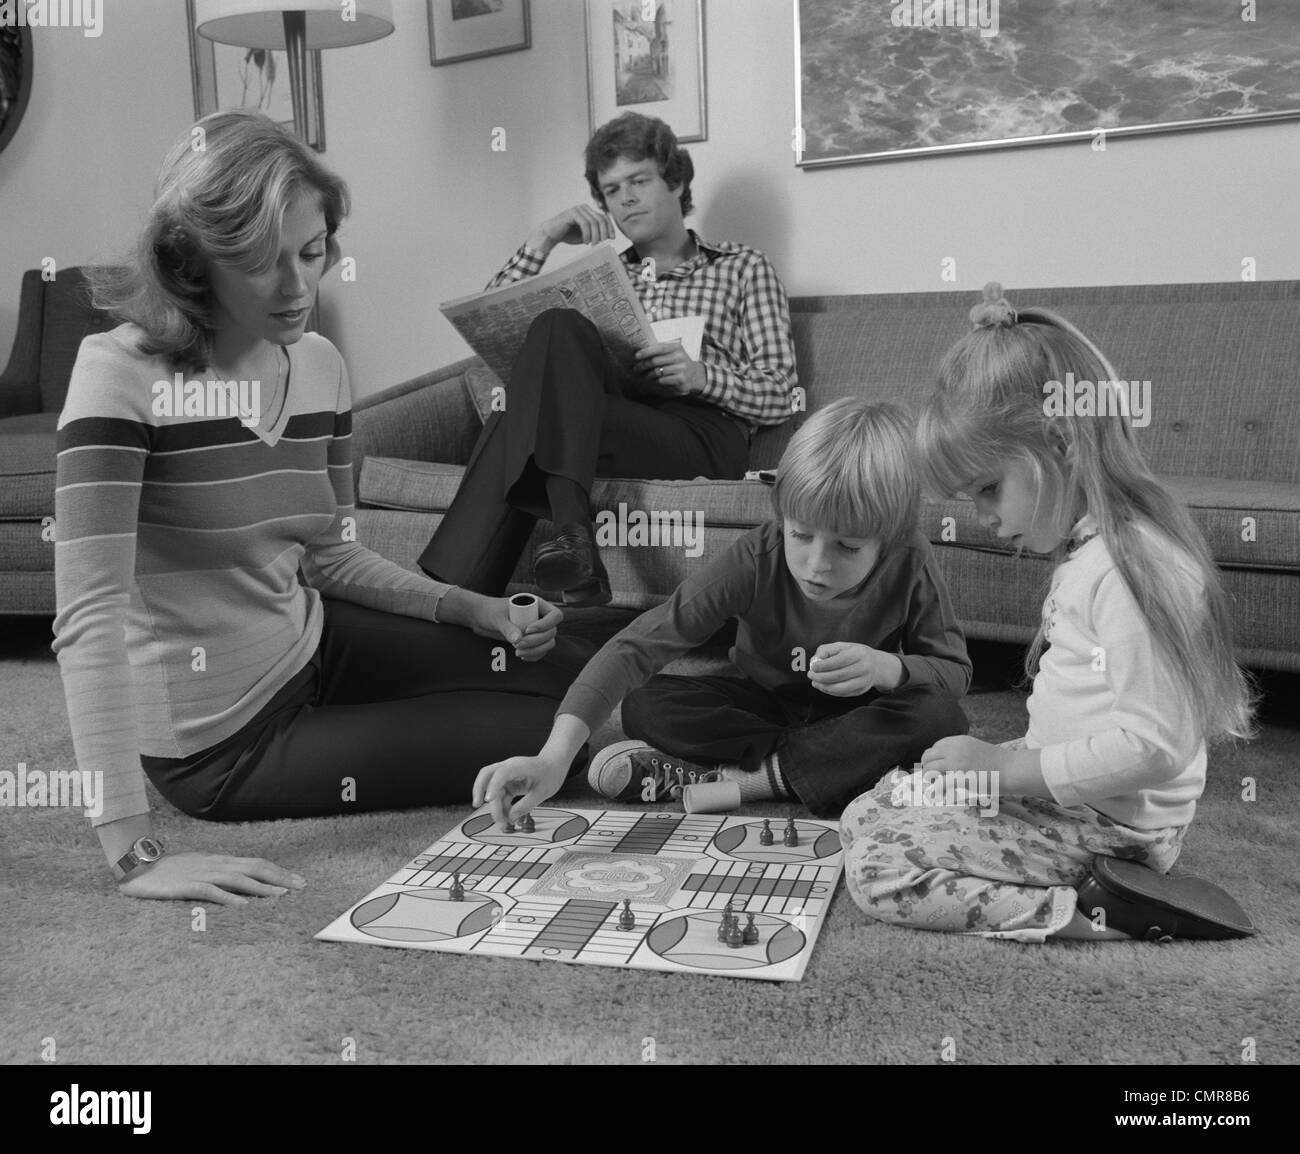 1970s FAMILY MOTHER KIDS PLAYING BOARD GAME LIVING ROOM FLOOR FATHER READING NEWSPAPER - Stock Image